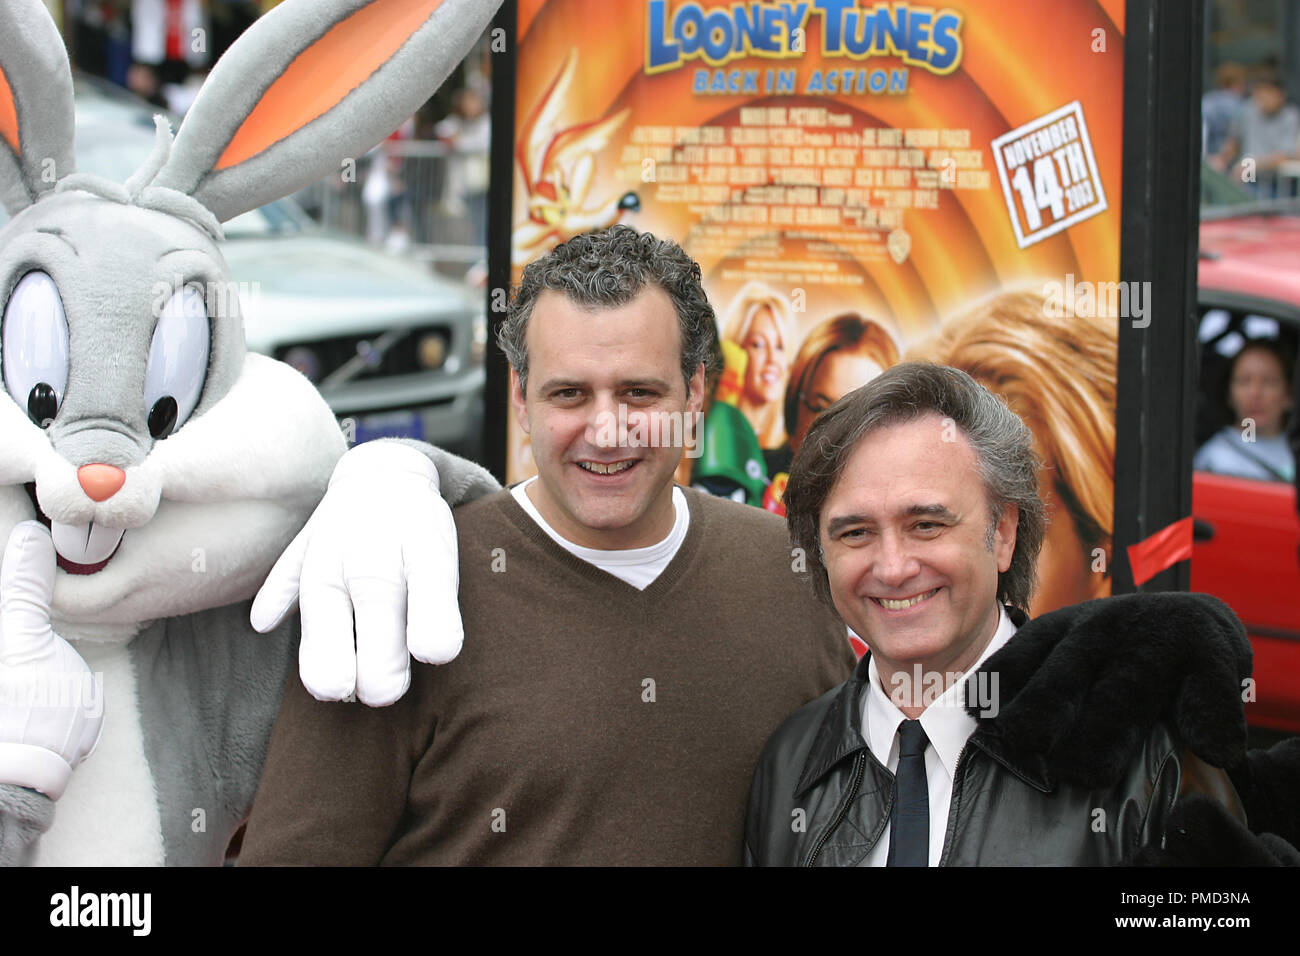 'Looney Tunes: Back in Action' Premiere 11-9-2003 Producer Bernie Goldmann and Director Joe Dante with Bugs Bunny Photo by Joseph Martinez - All Rights Reserved  File Reference # 21596_0024PLX  For Editorial Use Only -  All Rights Reserved - Stock Image